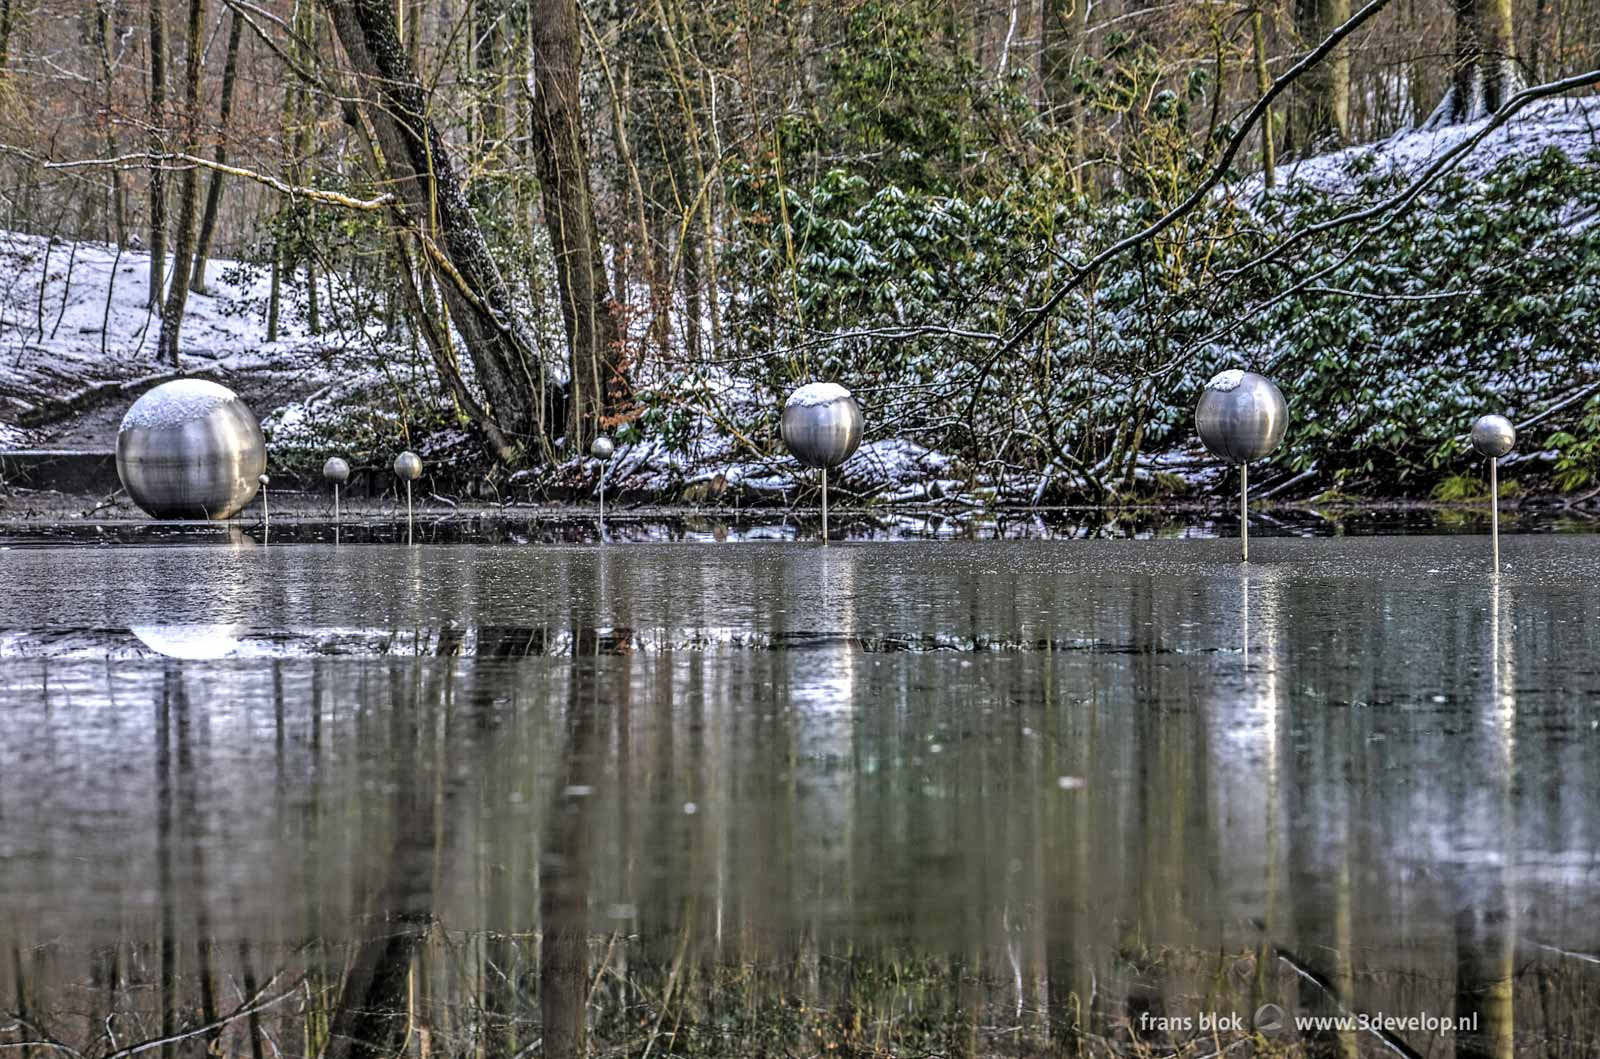 Photo in a wintery atmosphere of the sculpture Skies Captured by Henrietta Lehtonen, a forest planetarium in the Cold Pond in Sonsbeek Park in Arnhem, The Netherlands